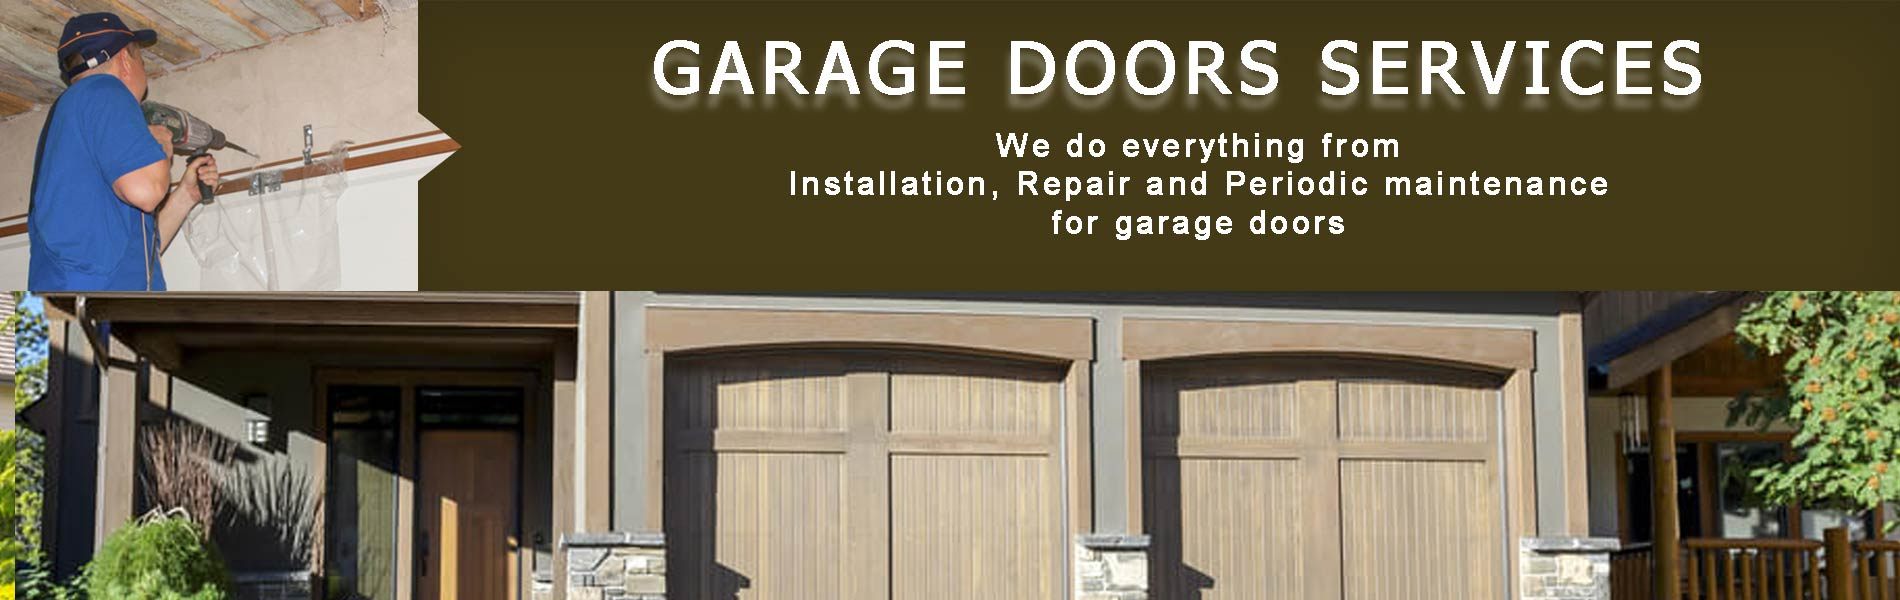 United Garage Door Service Springfield, PA 610-229-9001